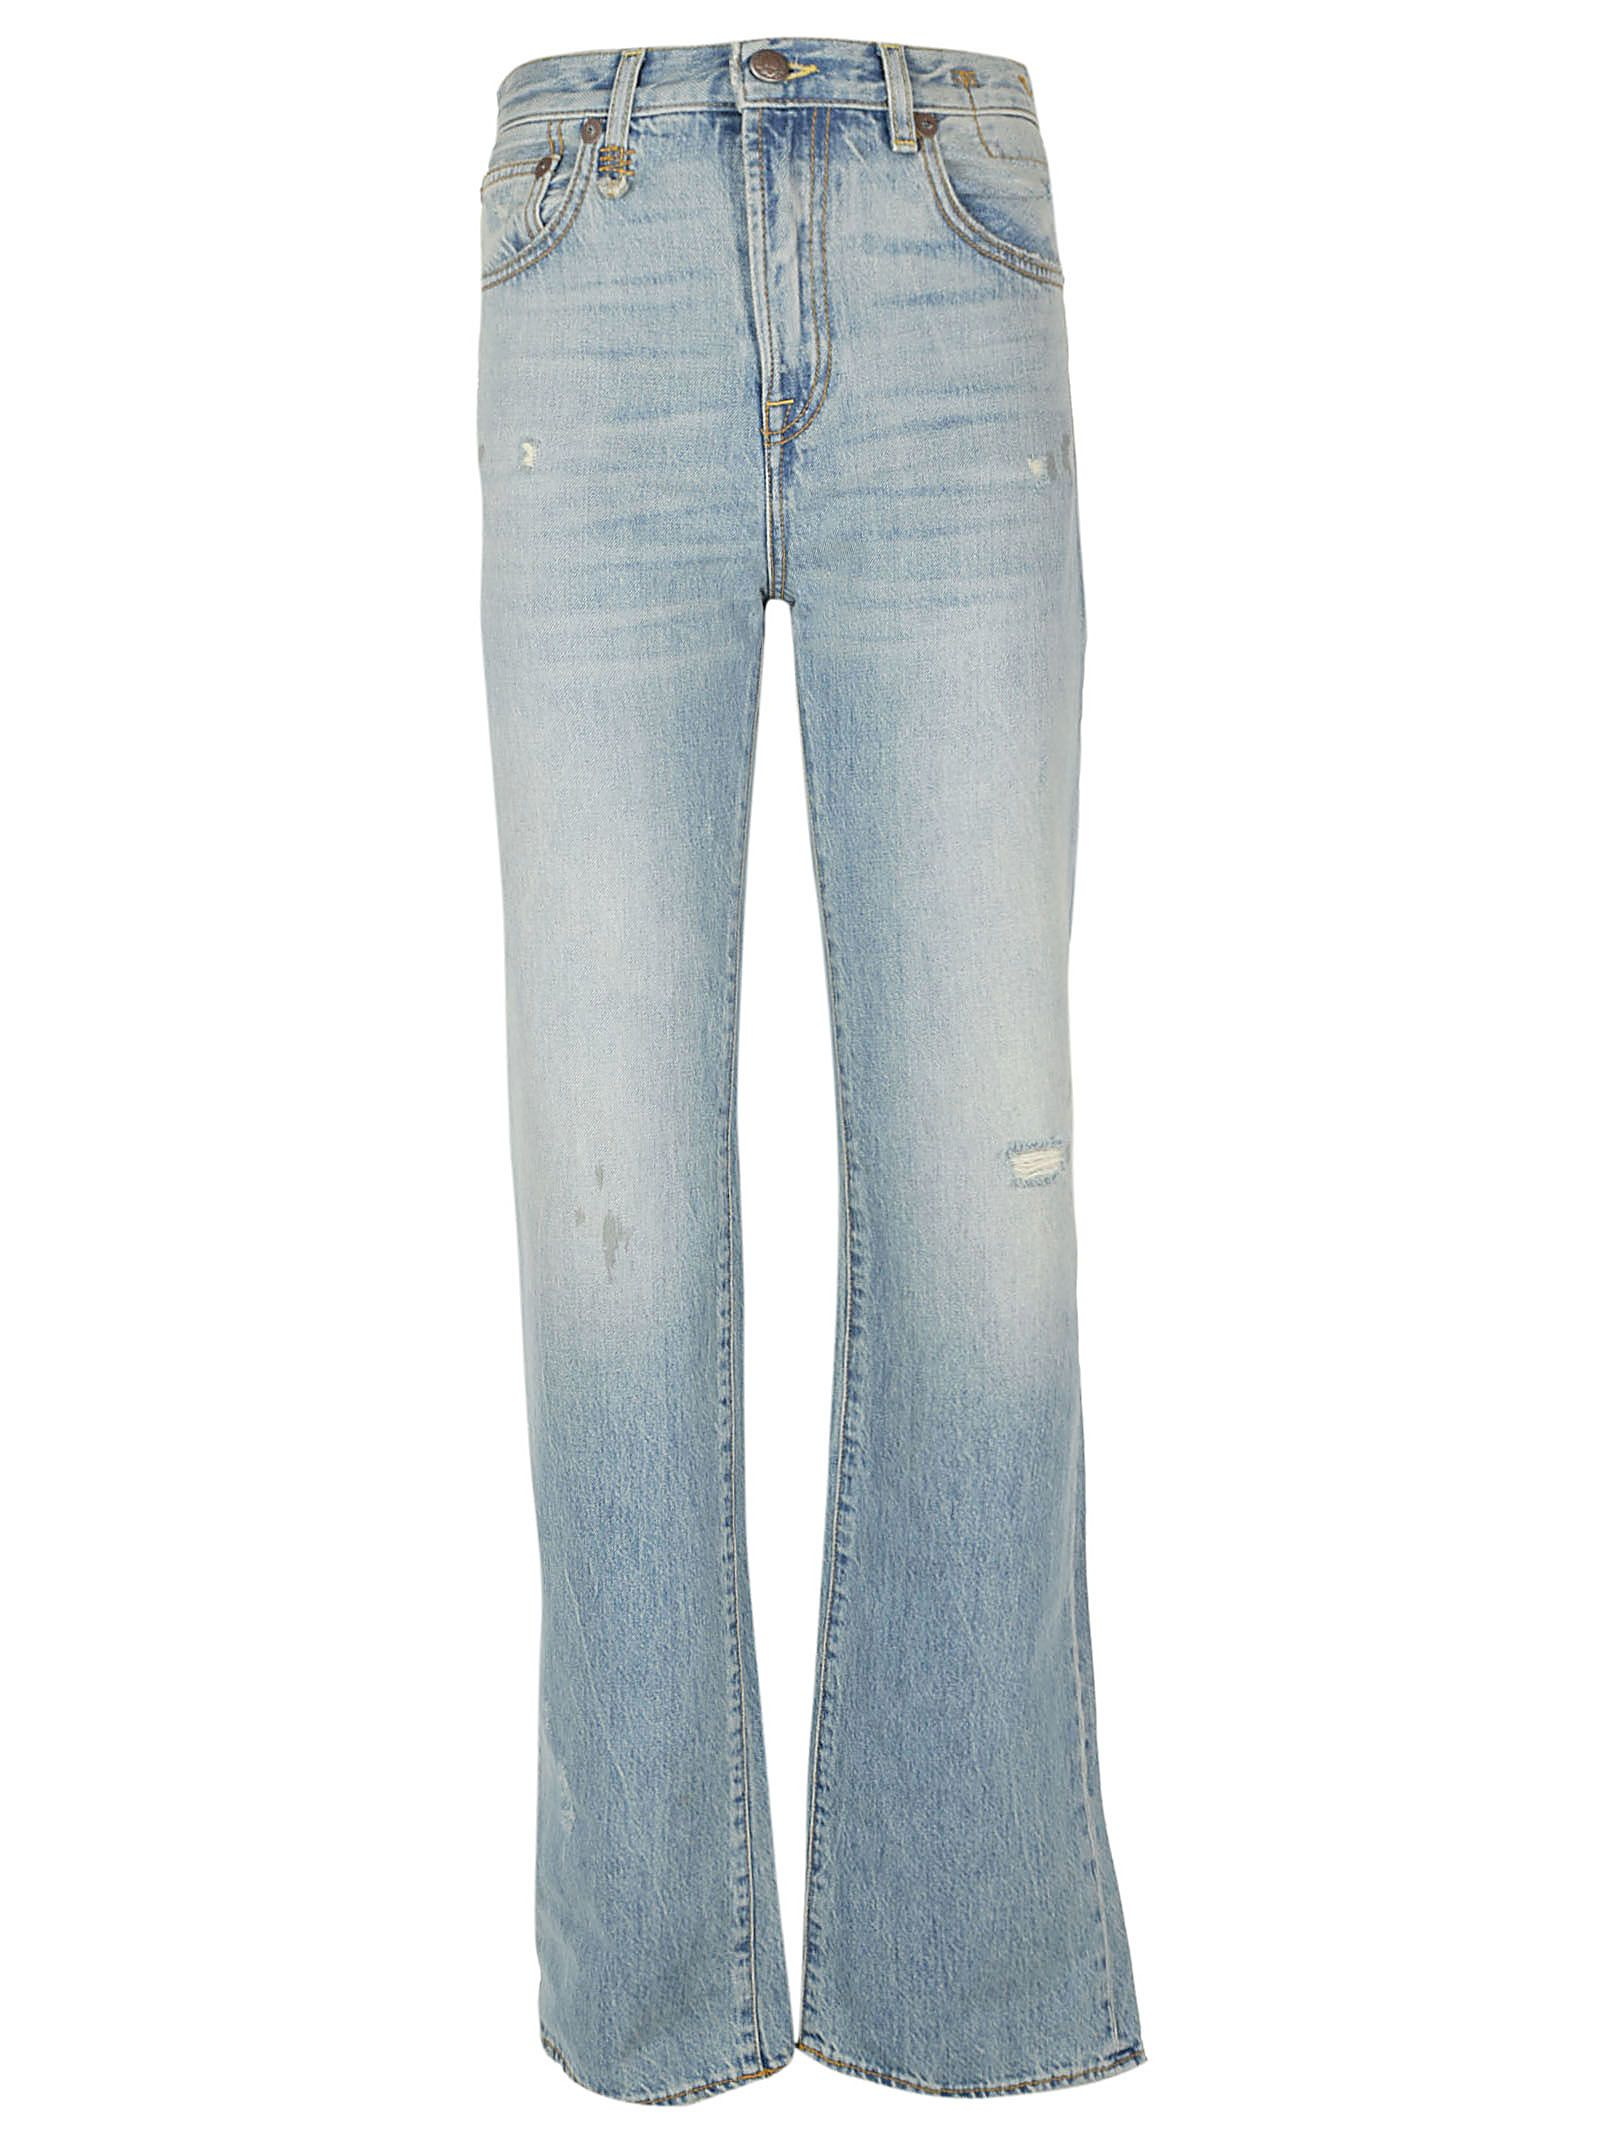 Jeans R13 Basic 10814924Italist R13 Colleen Colleen lF1JKc